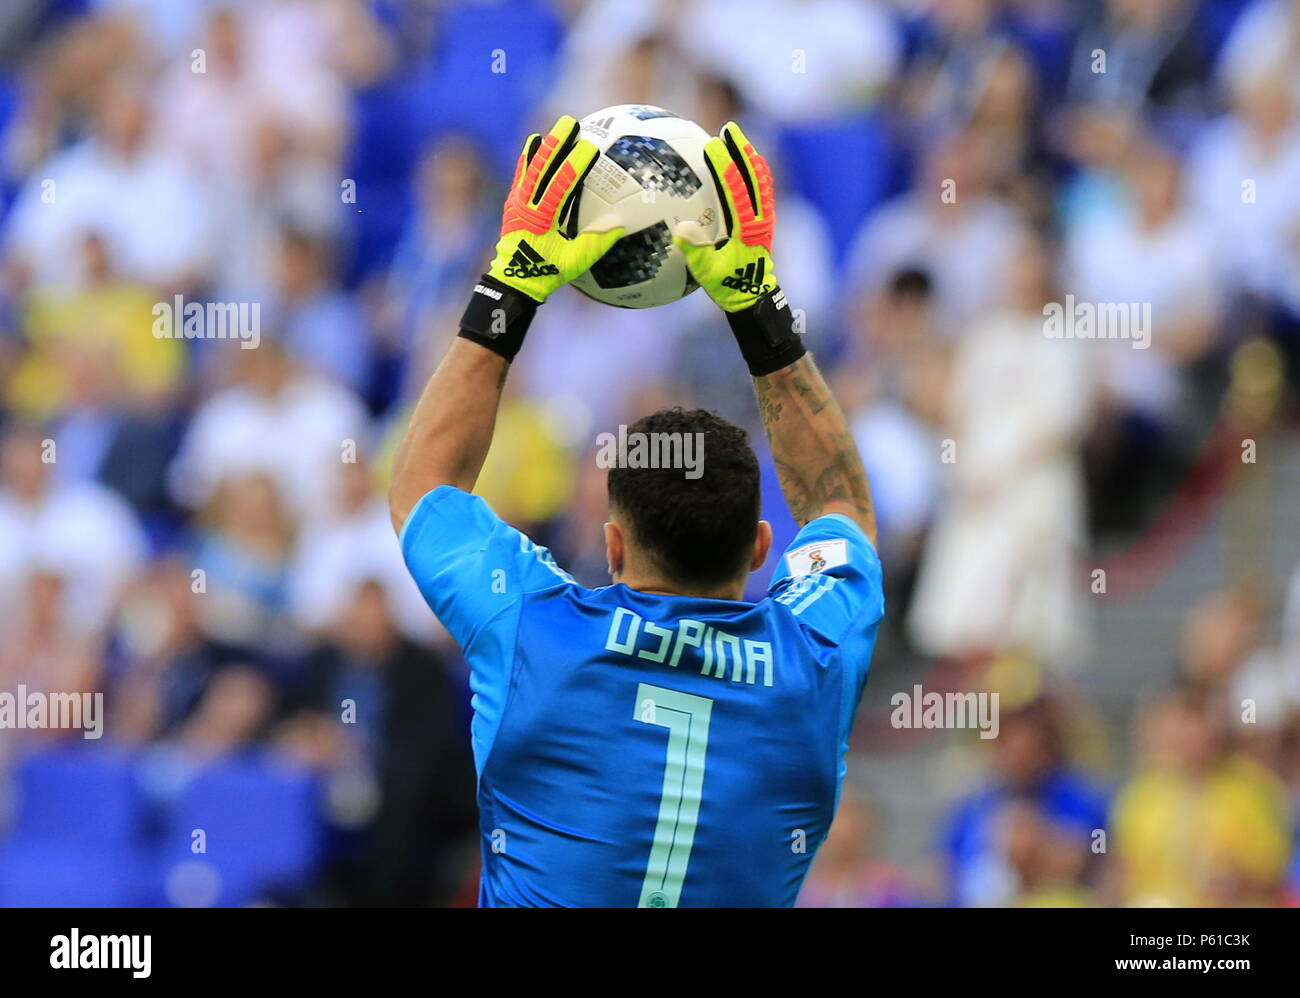 Ospina Stock Photos   Ospina Stock Images - Page 3 - Alamy 784d11bcb